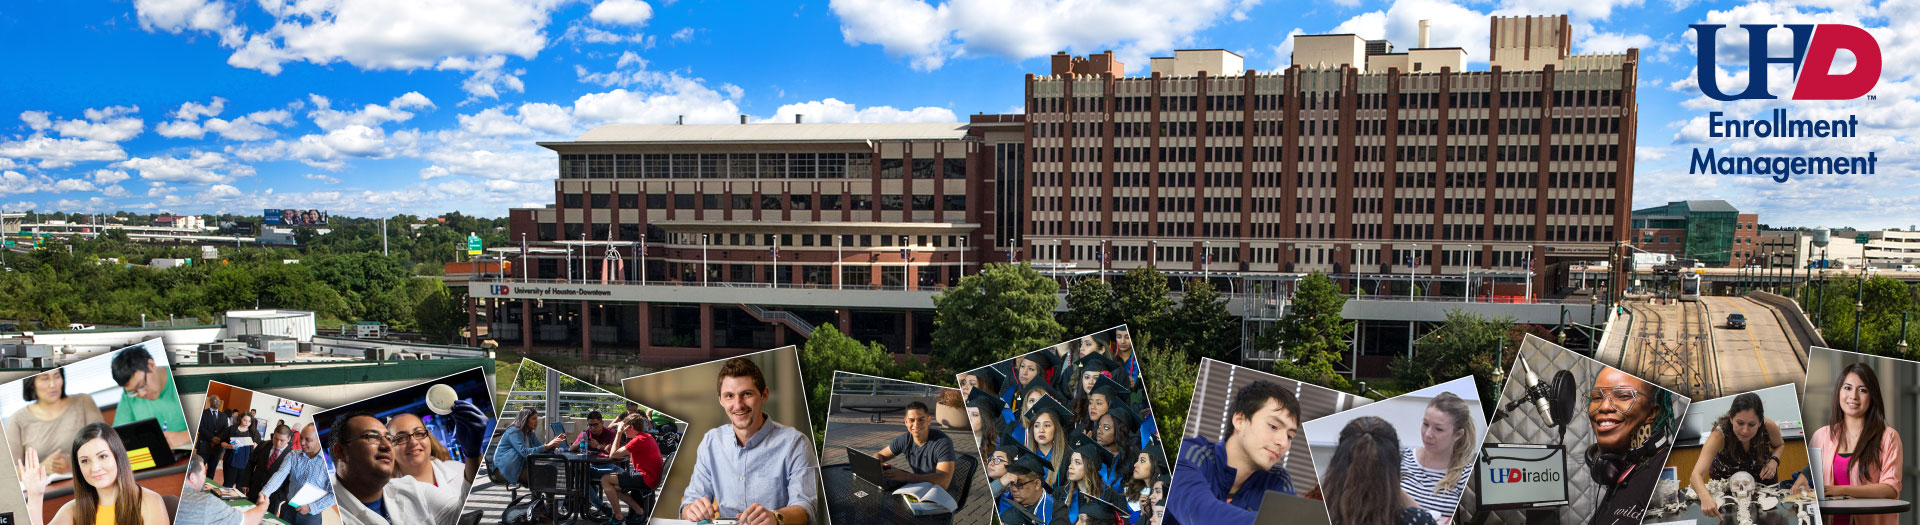 collage of UHD student photographs with a background of the One Main building